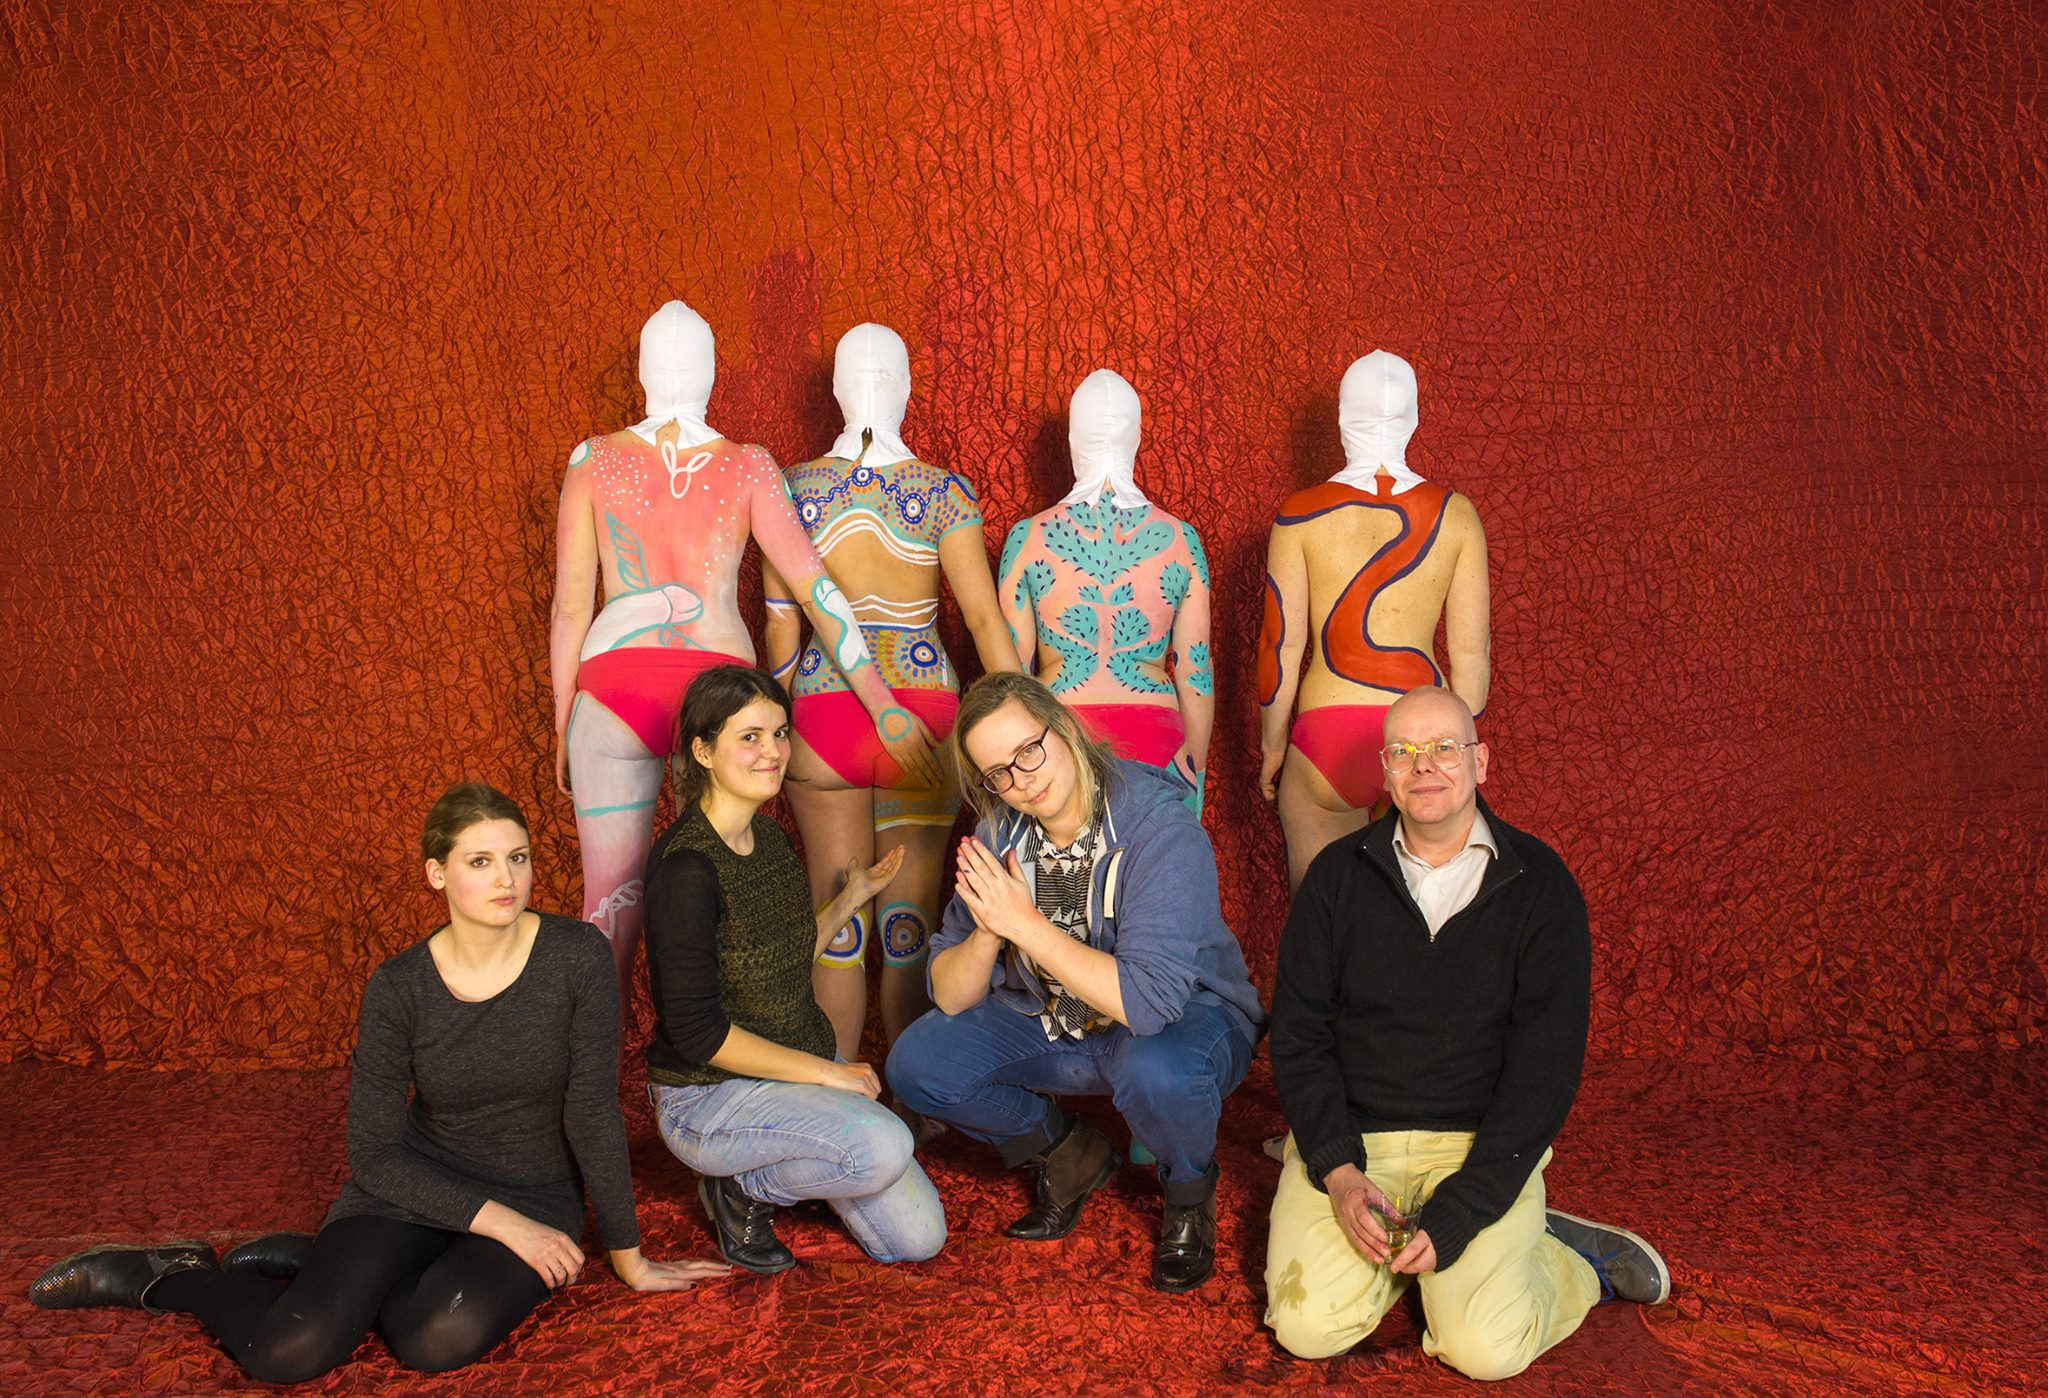 Bodypaint artists for 'The Party Pops' aka 'The weirdest photo you'll see today'.